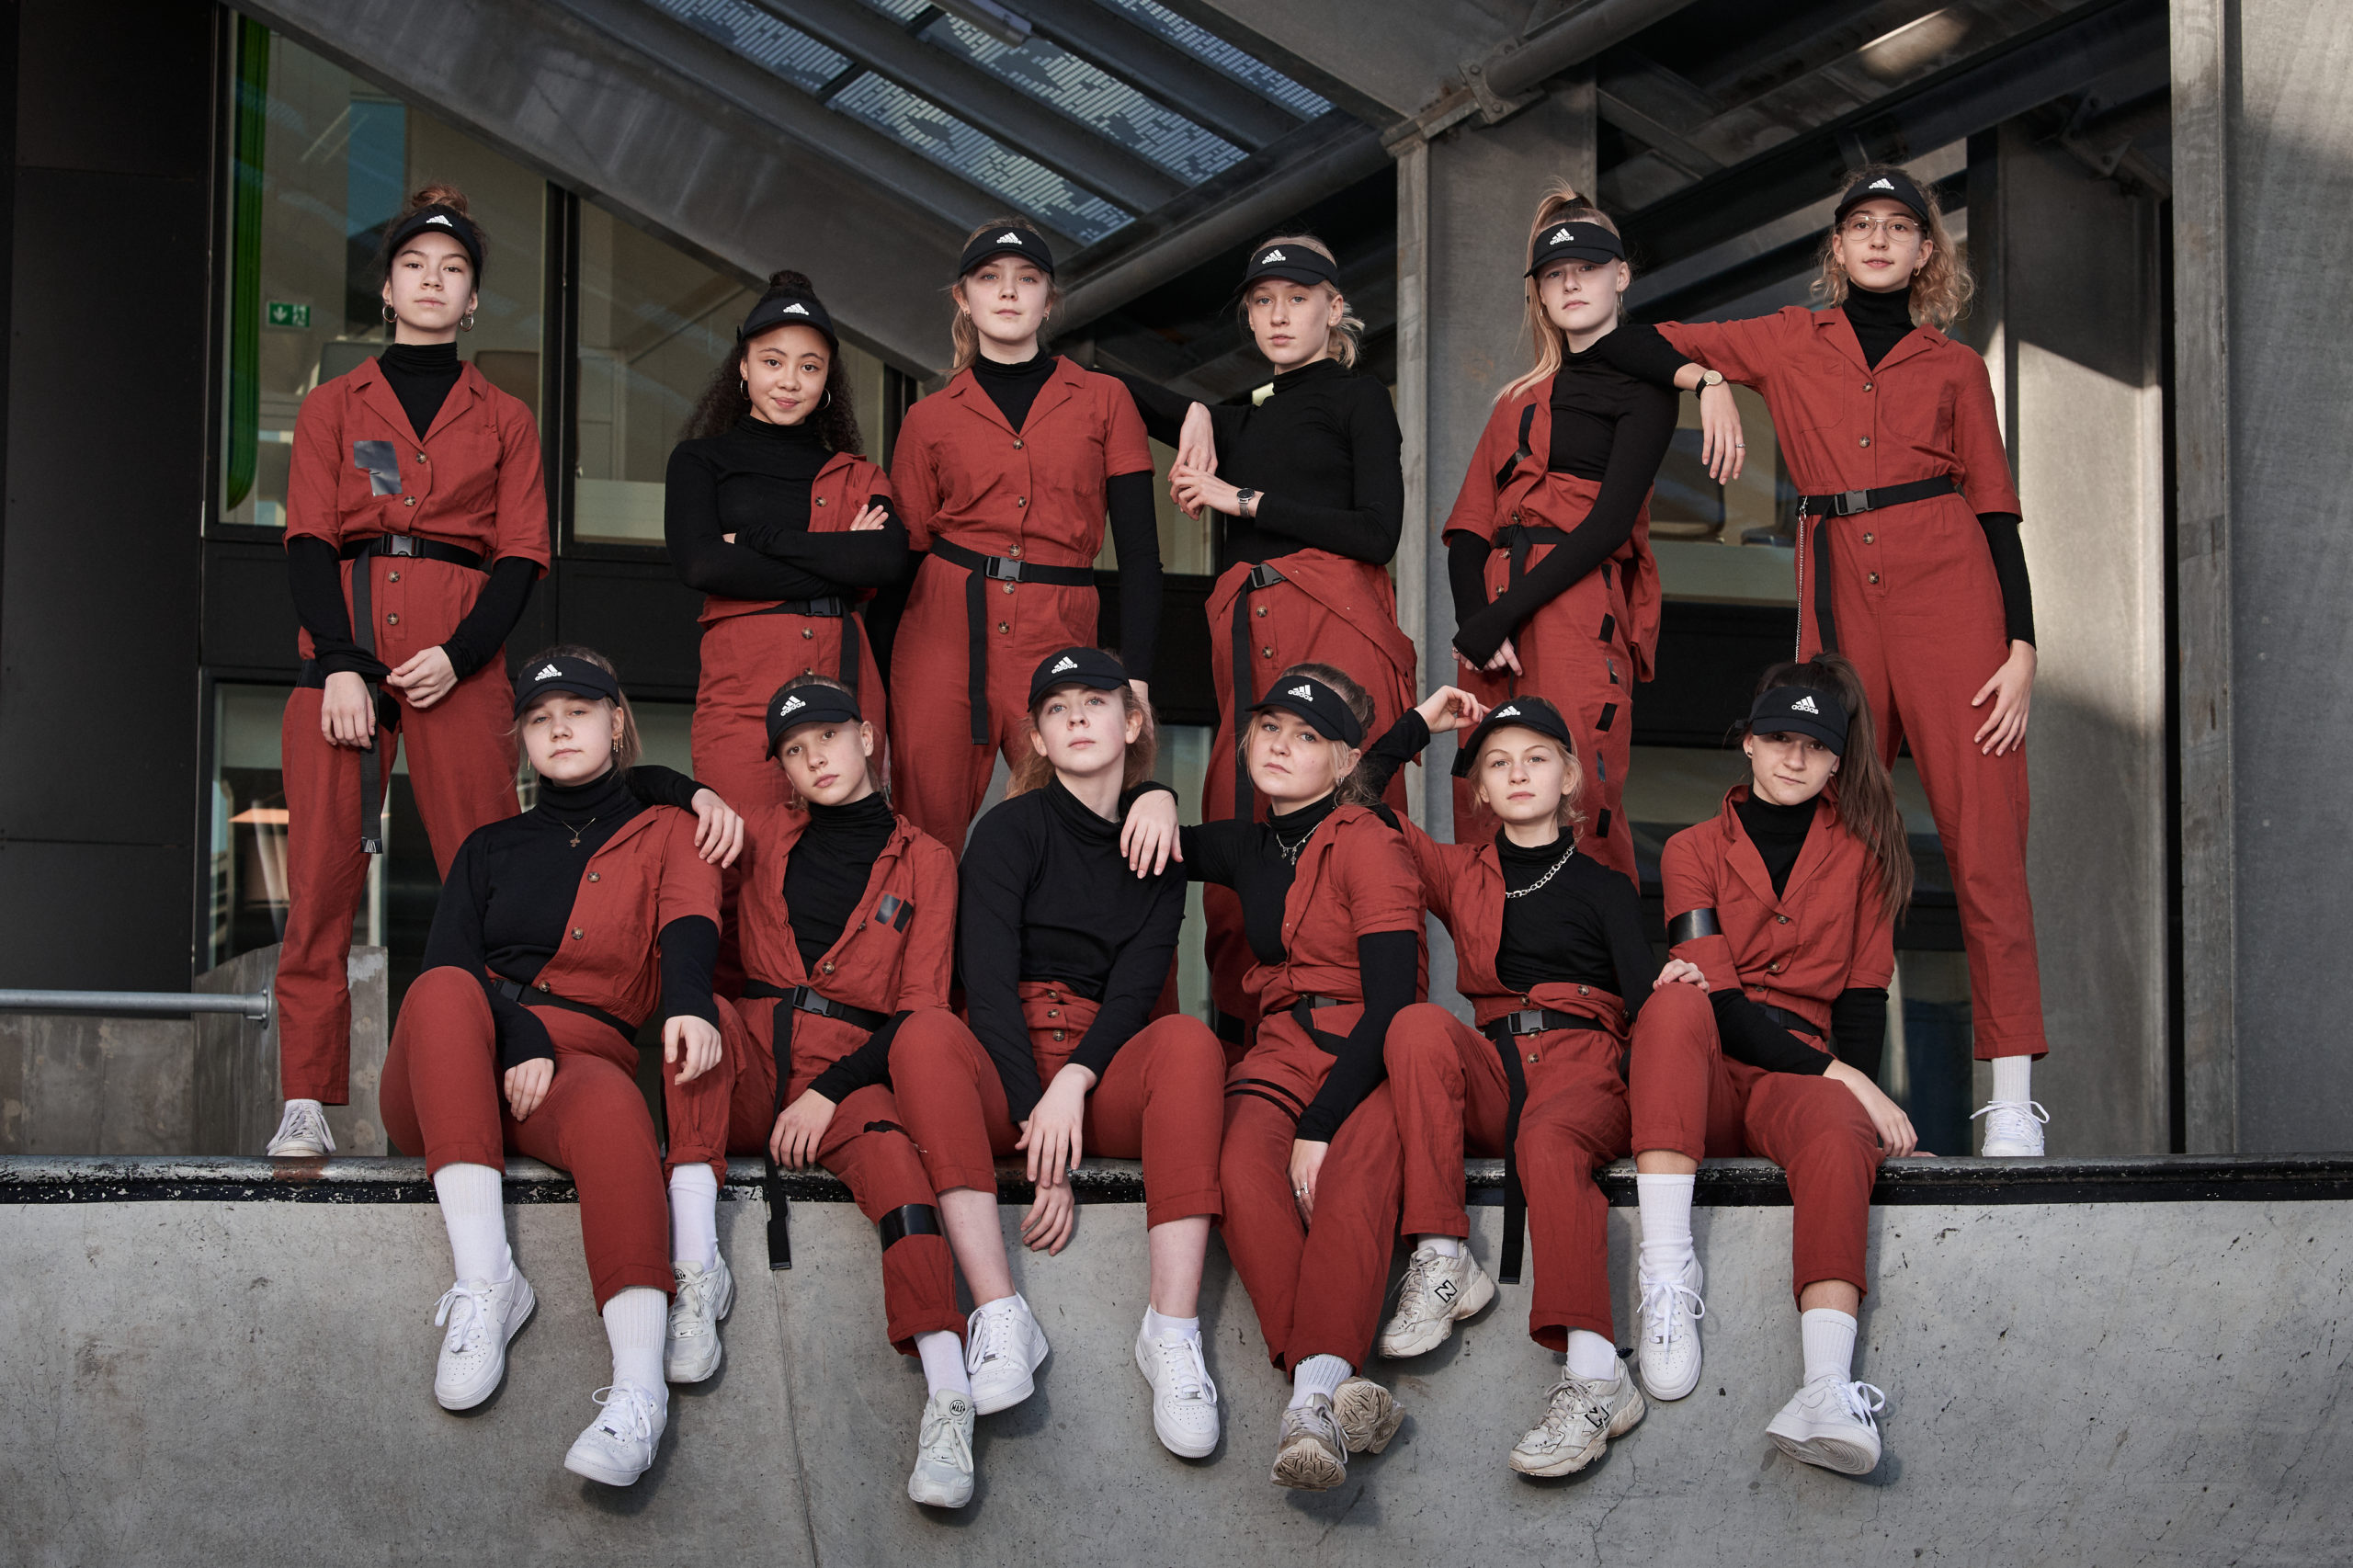 group of ladies wearing matching red and black outfits